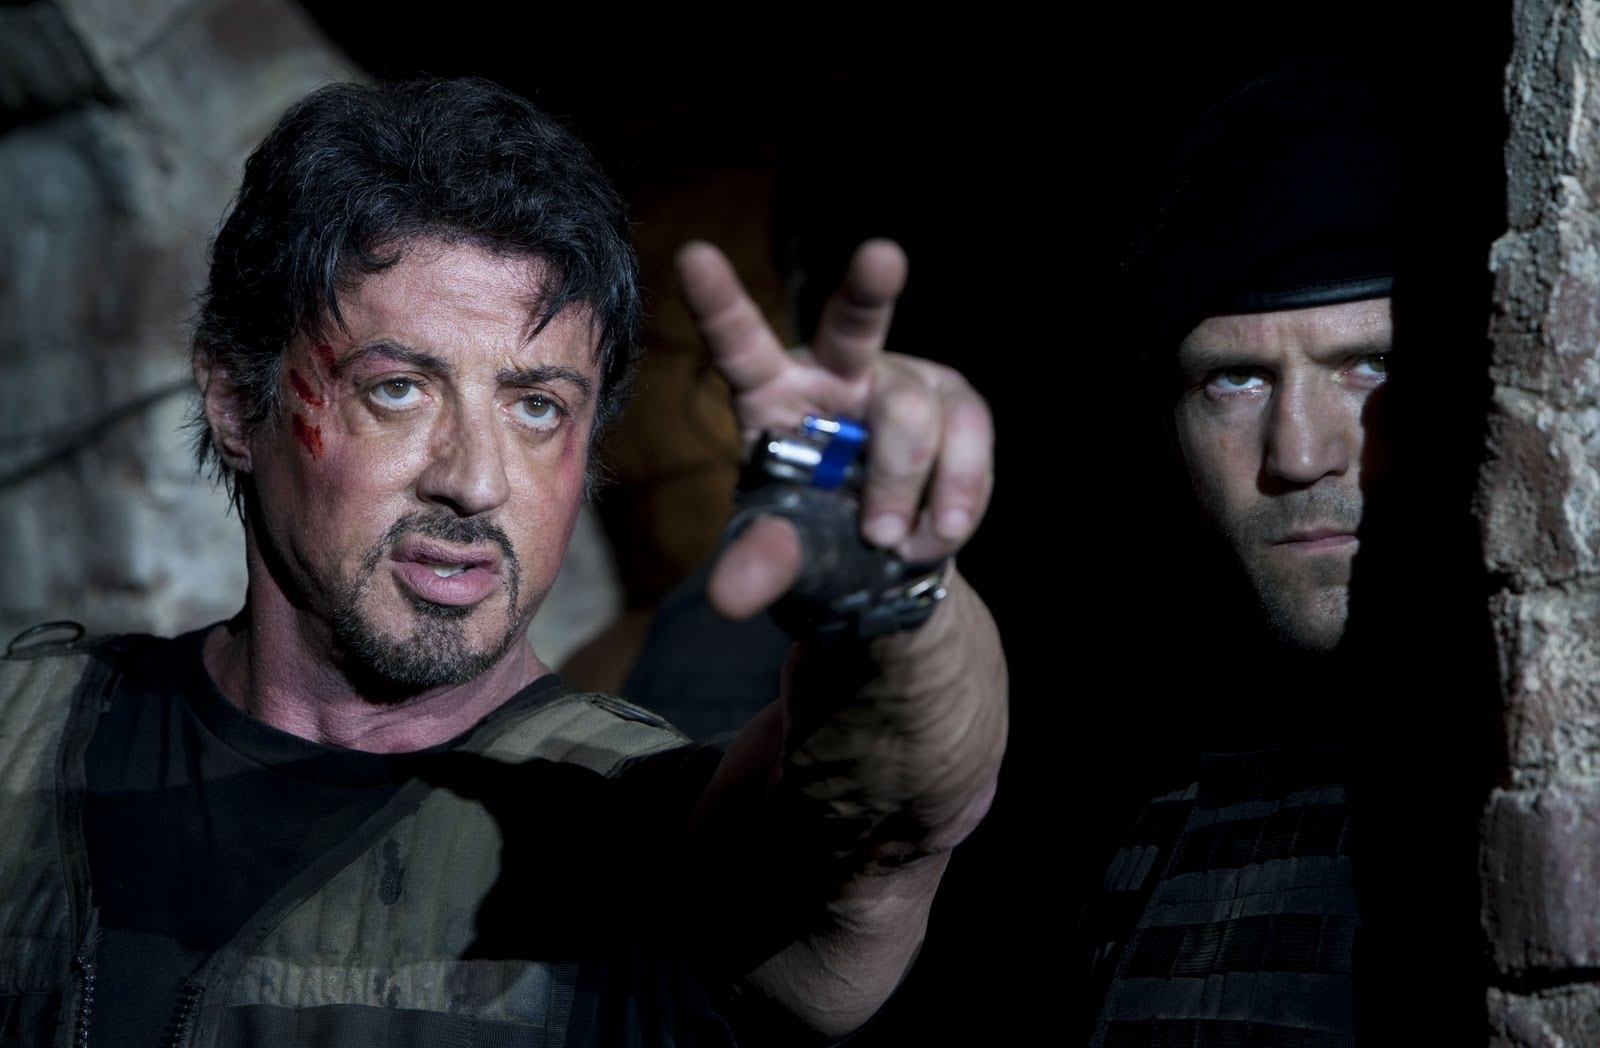 expendables 2 3d release date / basketball wives trailer season 2